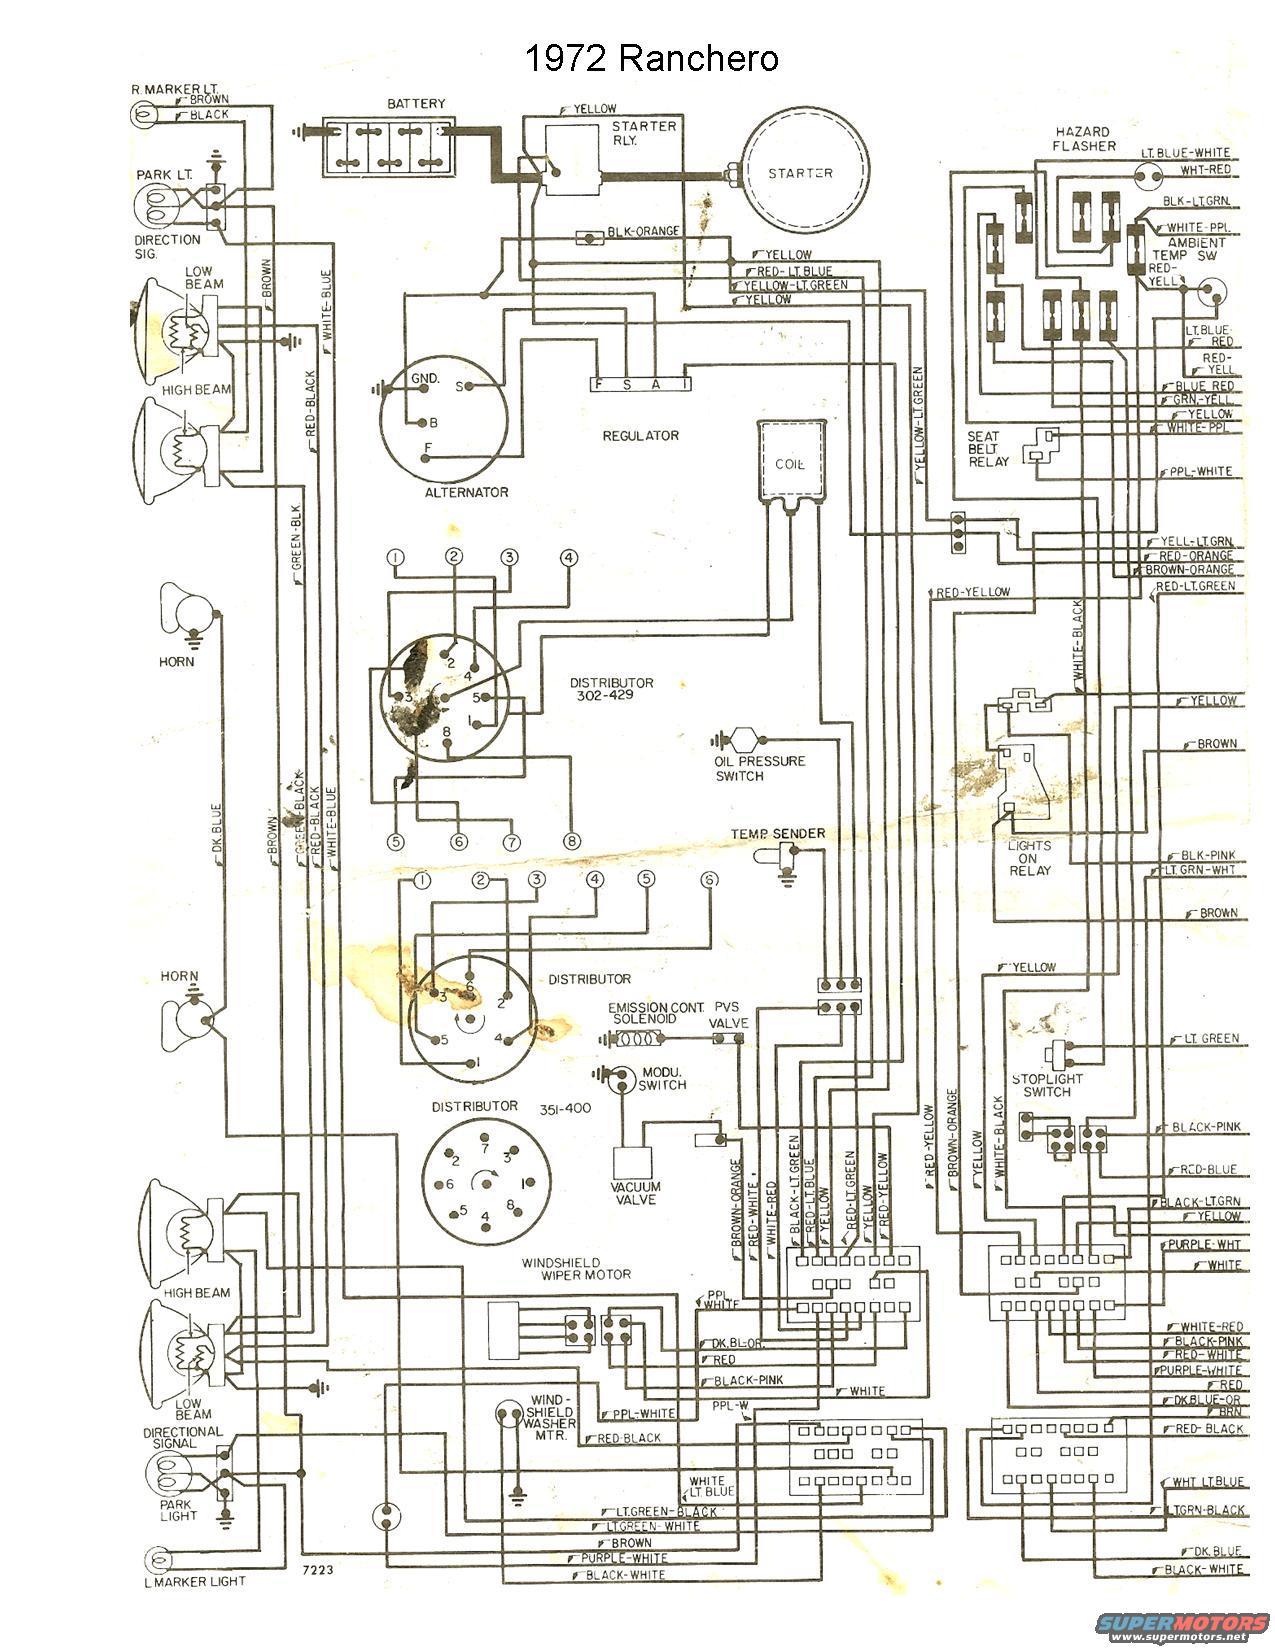 Wiring Diagram 1976 Plymouth Duster Page 2 And Mg Midget Usa 72 76 Diagrams Ranchero Us 1970 Ford Torino 1973 Electrical